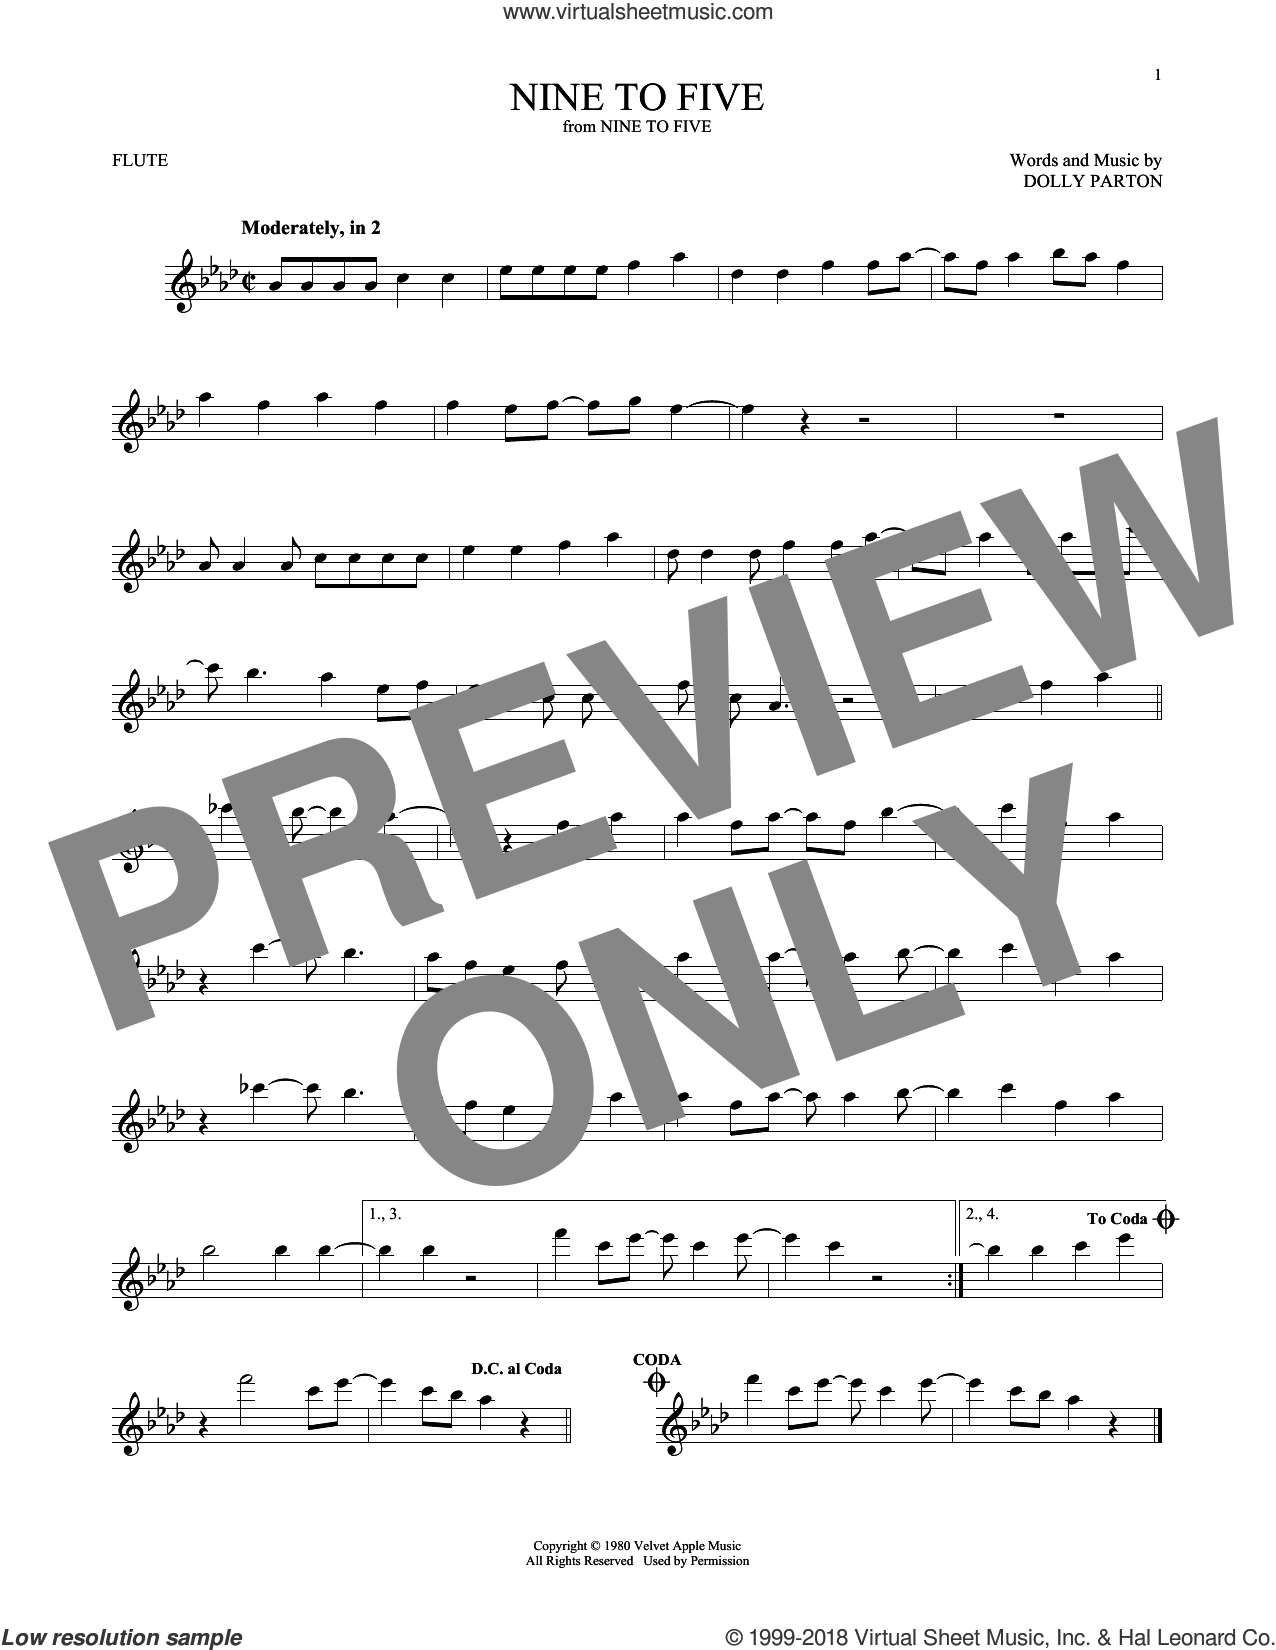 Nine To Five sheet music for flute solo by Dolly Parton, intermediate skill level